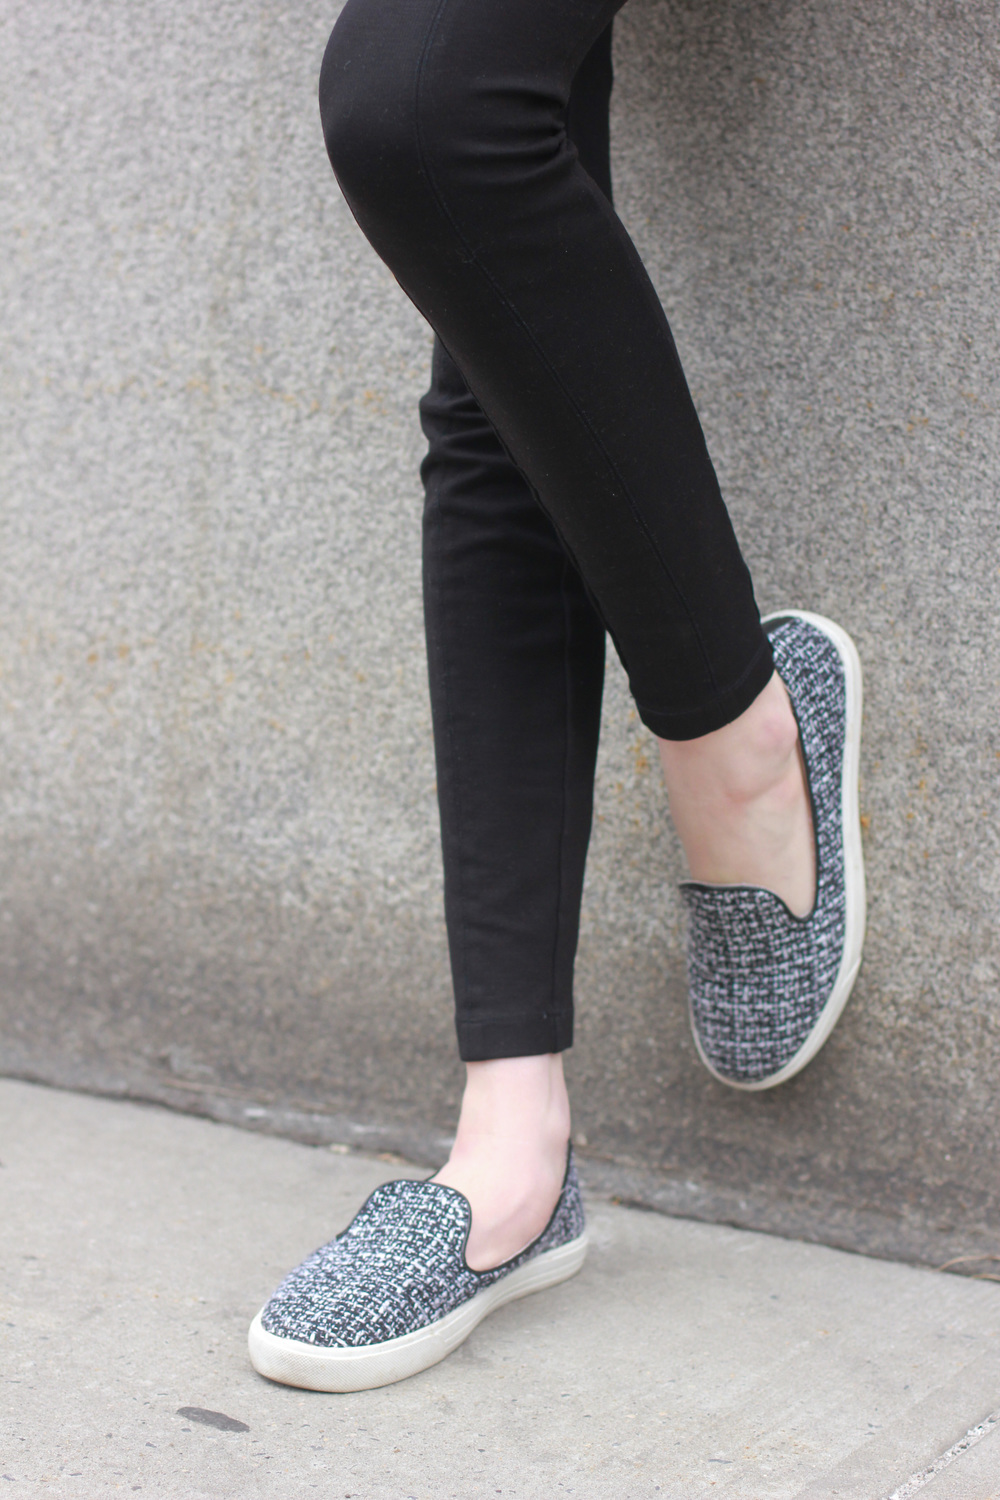 J.Crew pixie pants, LOFT black top, J.Crew factory tweed sneakers, j.crew factory crystal necklace, LOFT bomber jacket